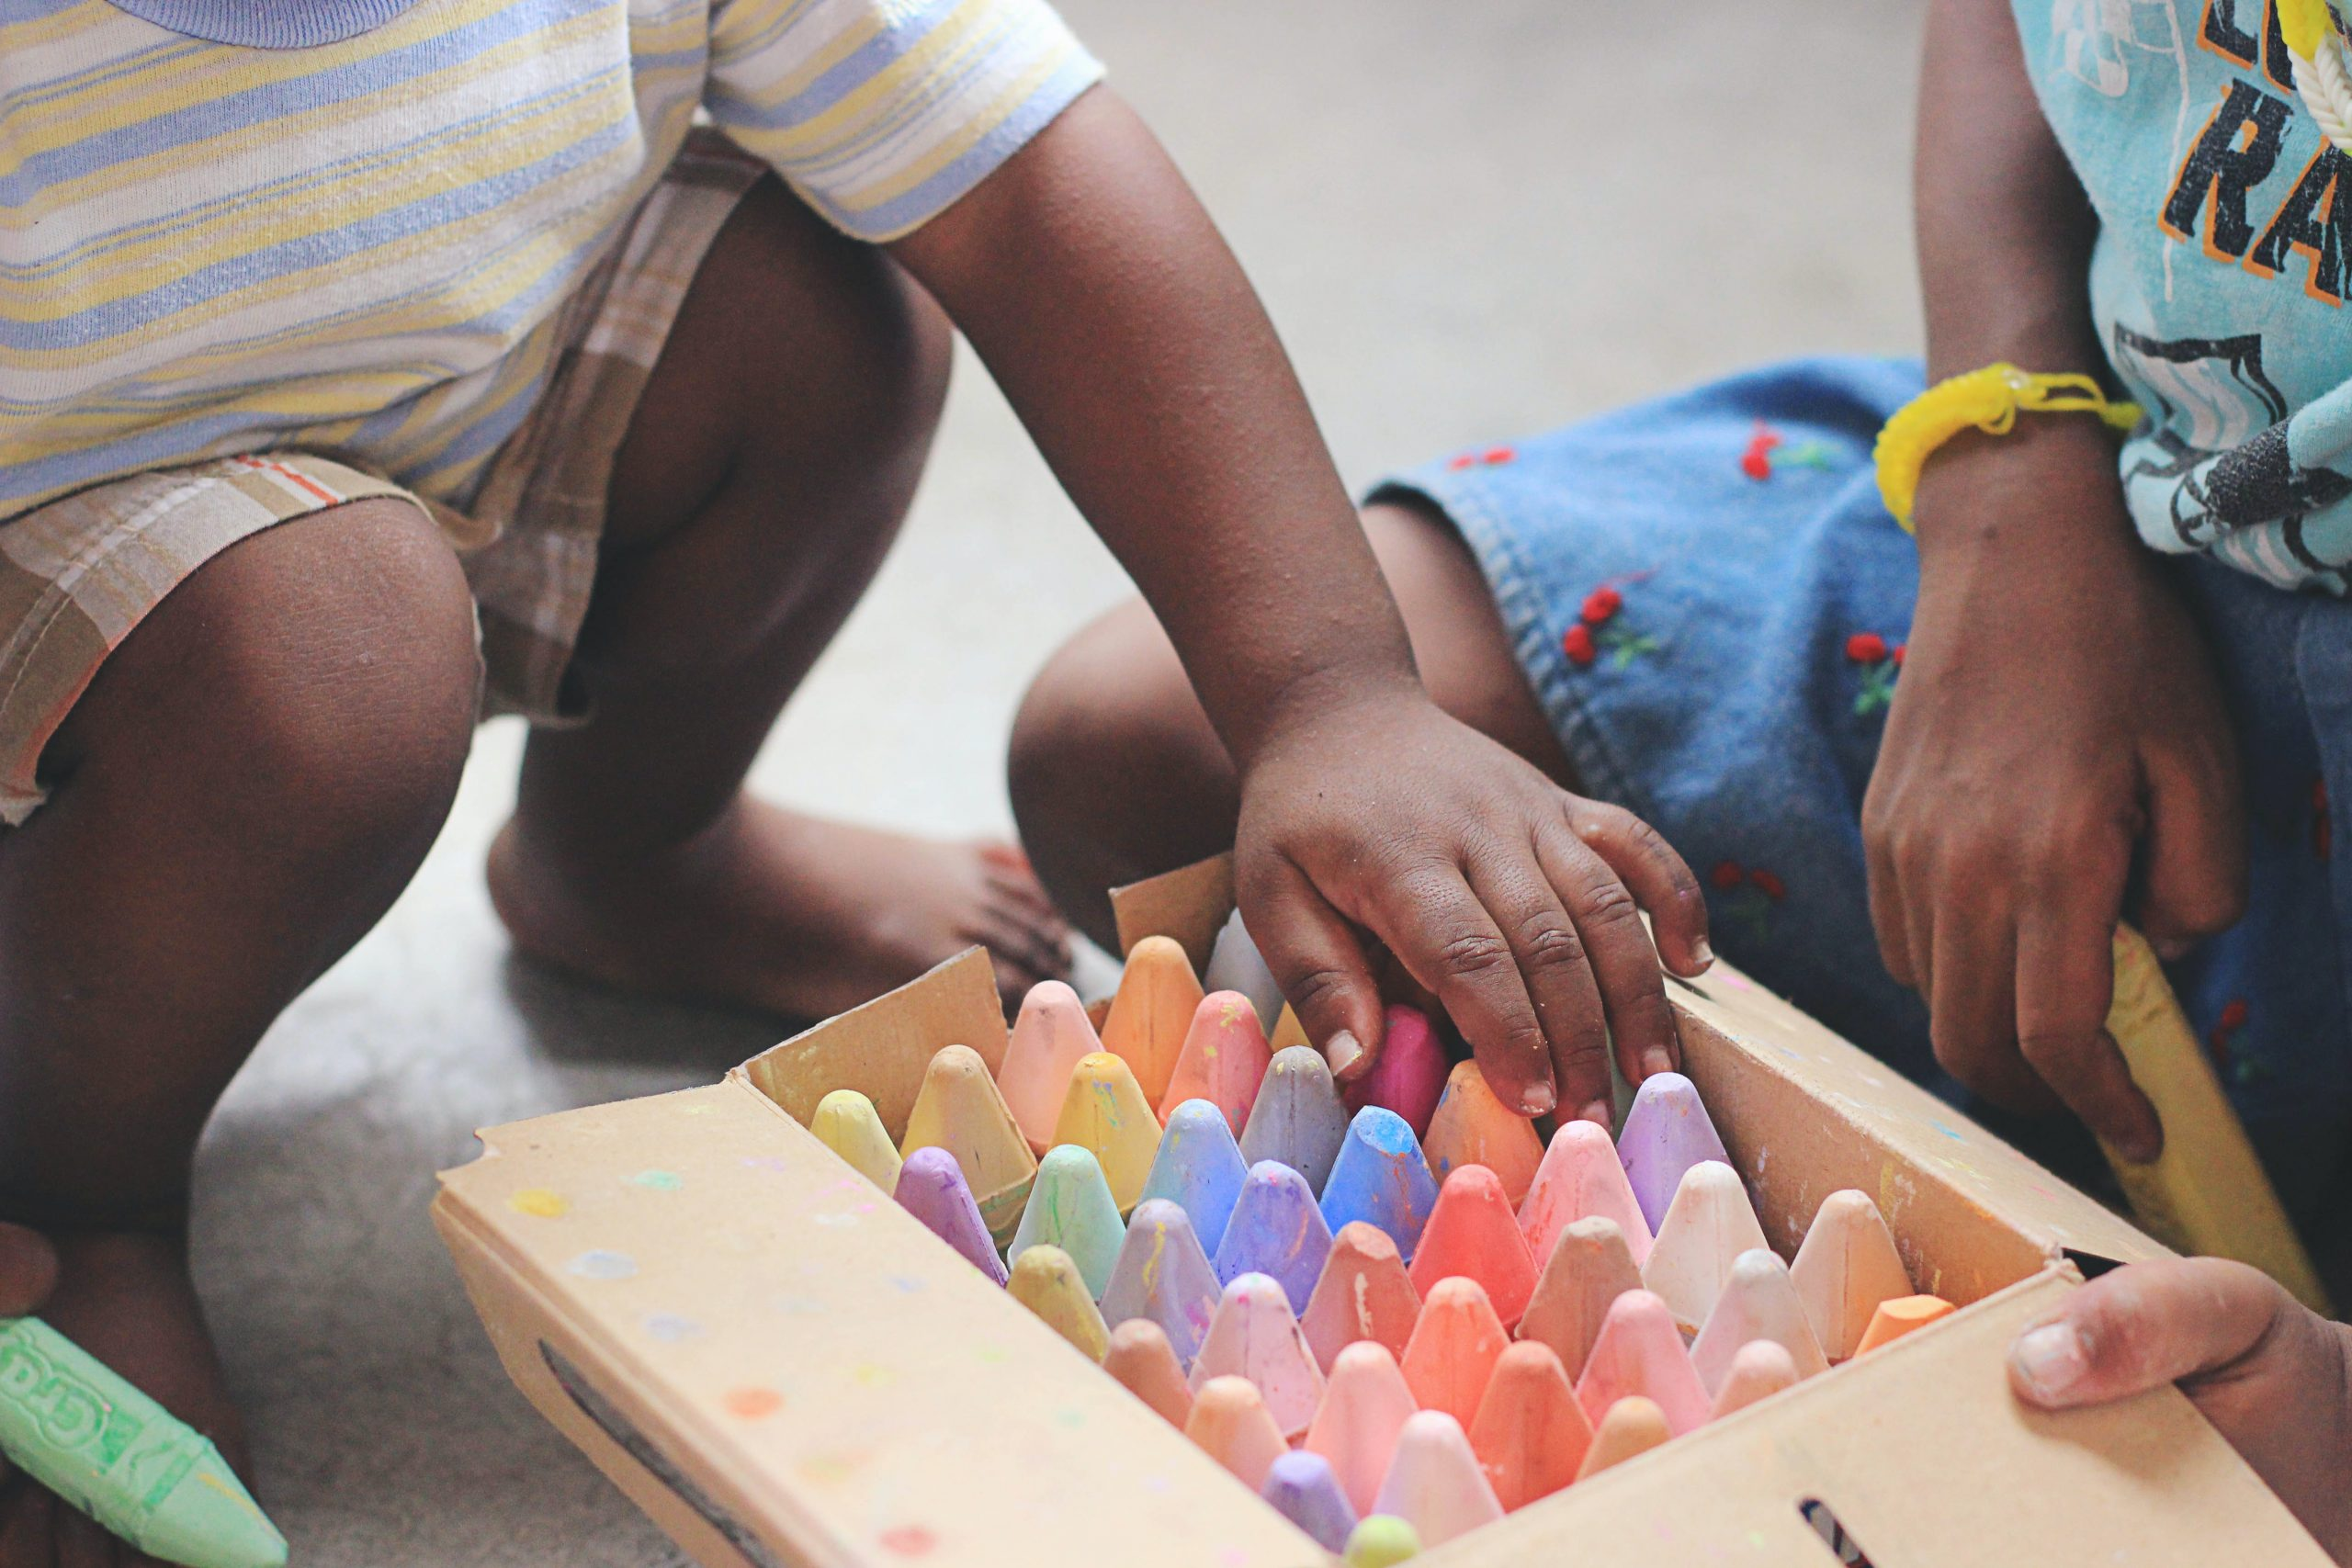 A child is reaching into a box of chalk with another child beside them.